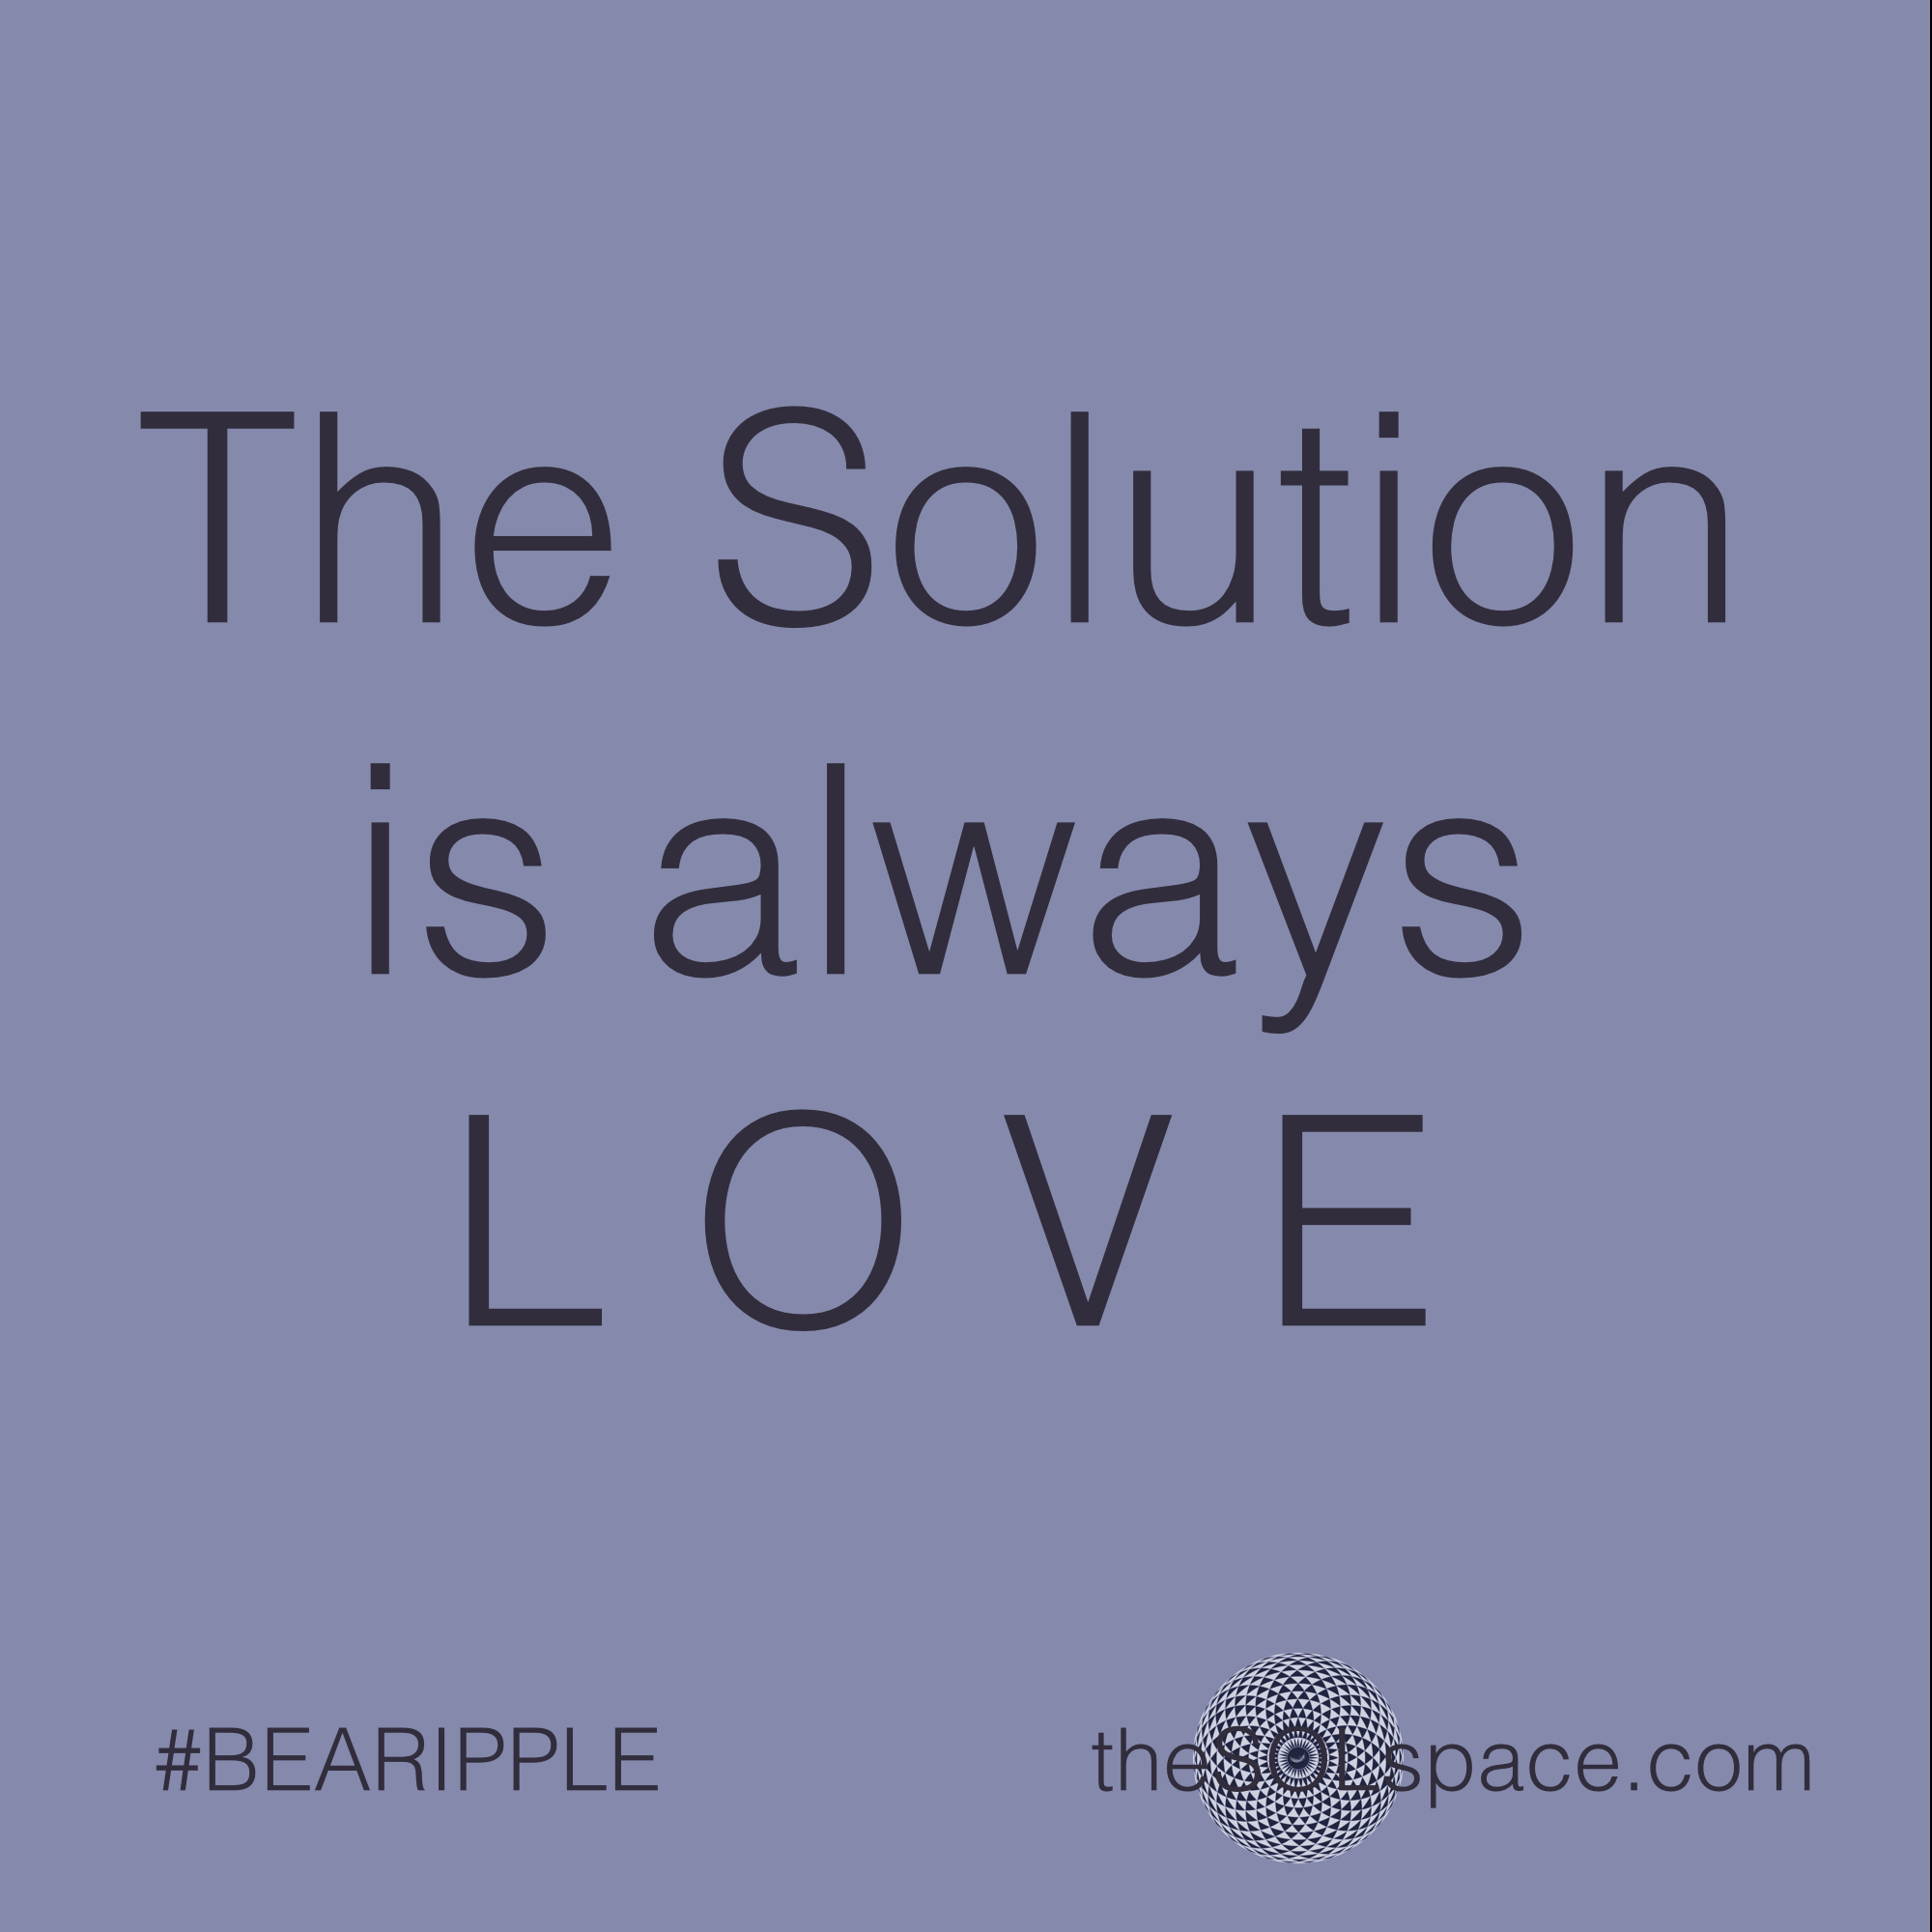 #BeARipple.. The Solution is always LOVE @theSOLspace